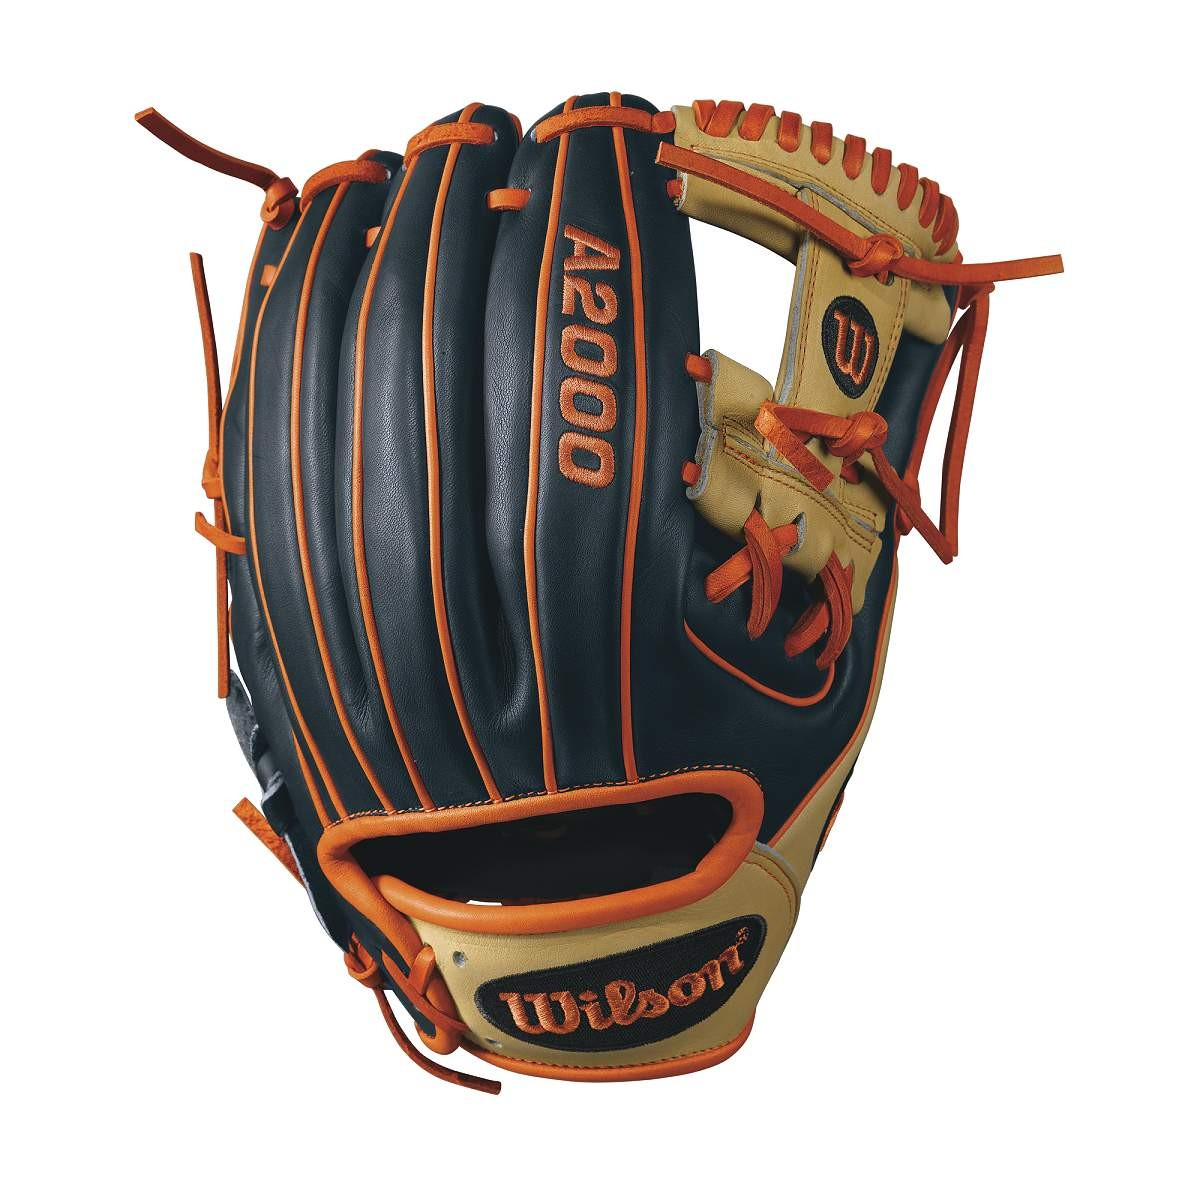 wilson-a2000-jose-altuve-game-model-infield-11-5-baseball-glove-right-hand-throw A2ORB17JA27GM-RightHandThrow Wilson 887768499365 Jose Altuve likes the feel of his 11.5 A2000. Like his